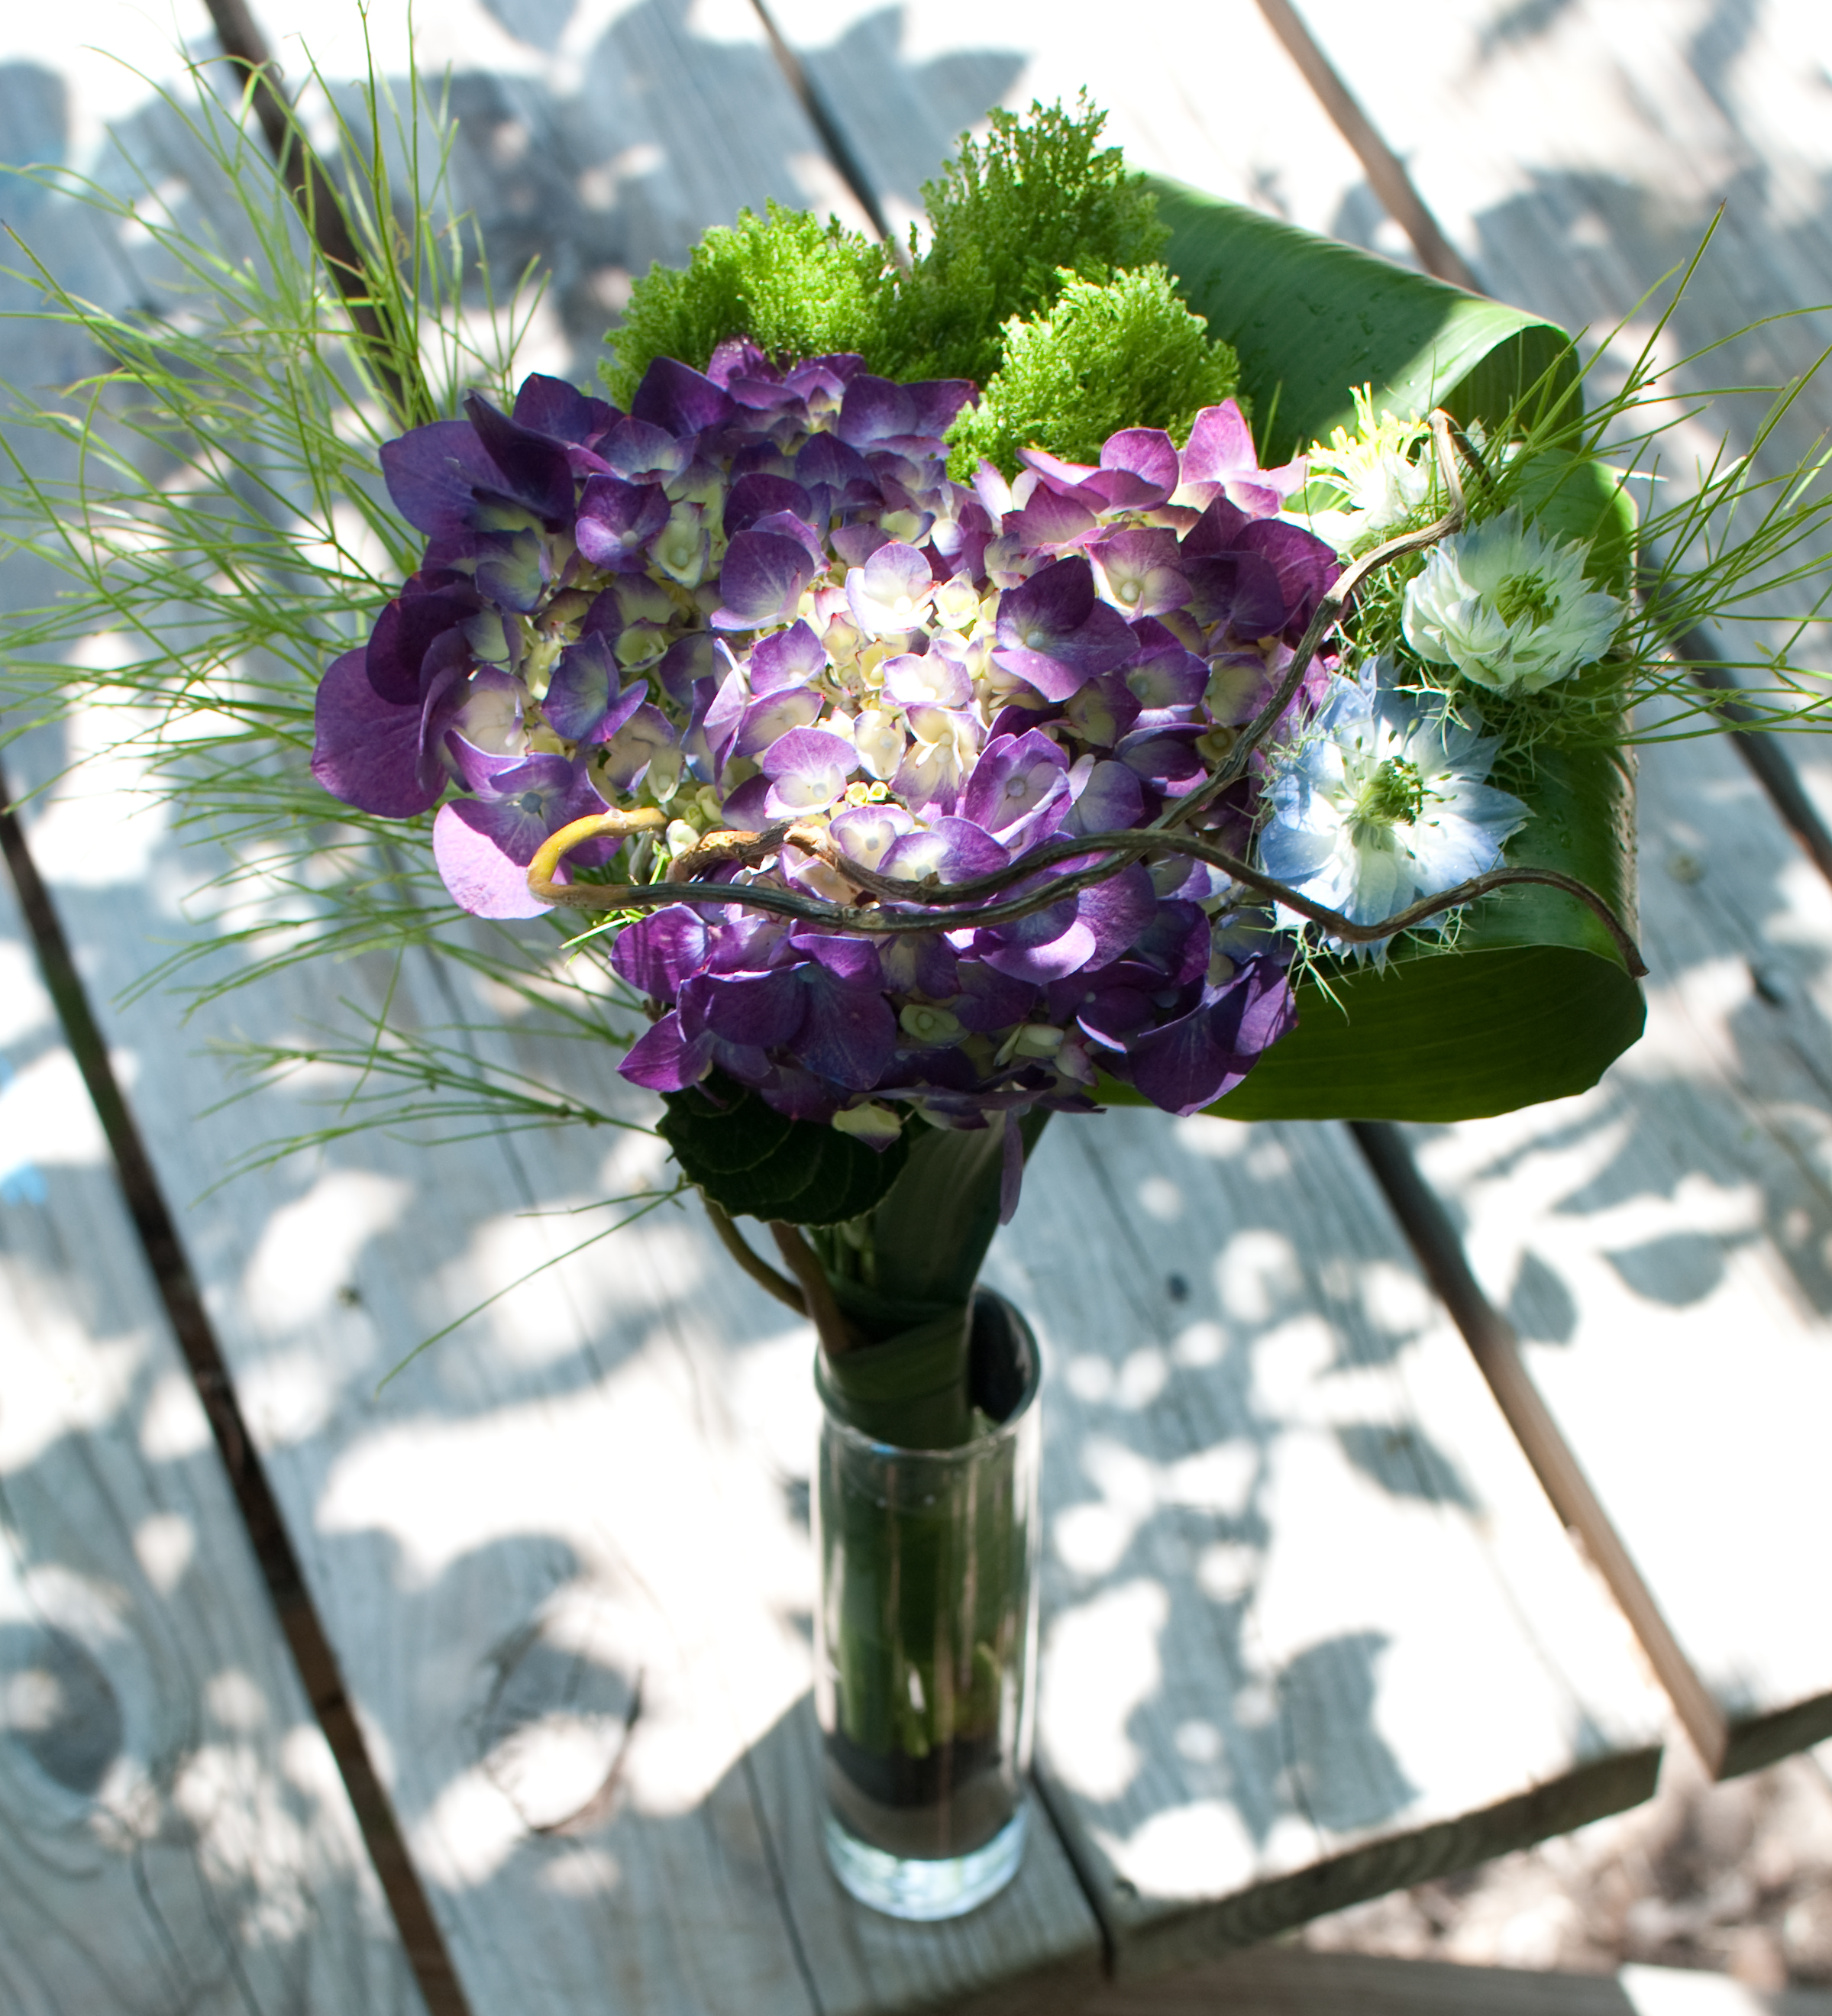 Wedding flowers austin wedding flowers cheap austin wedding flowers cheap izmirmasajfo